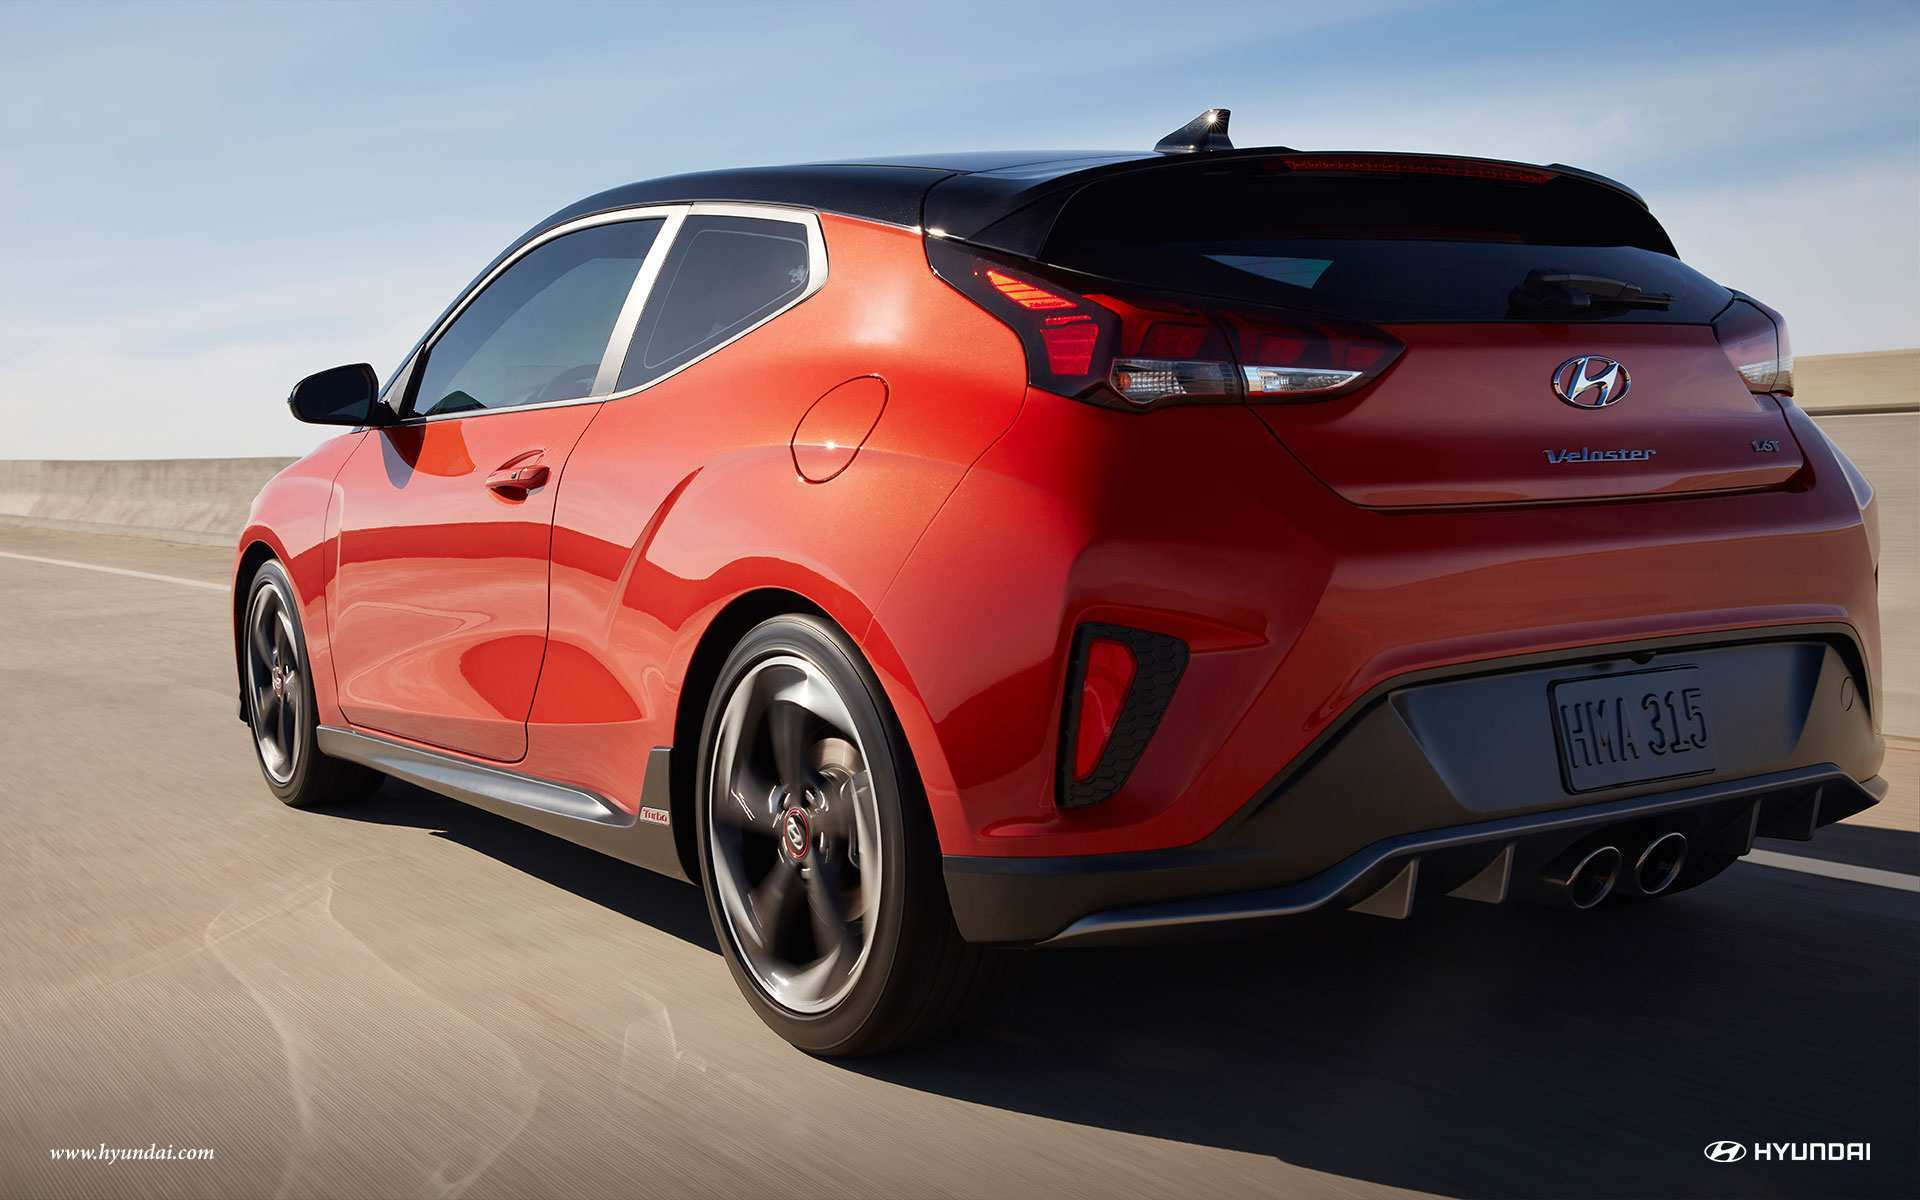 86 All New 2019 Hyundai Veloster Turbo Images